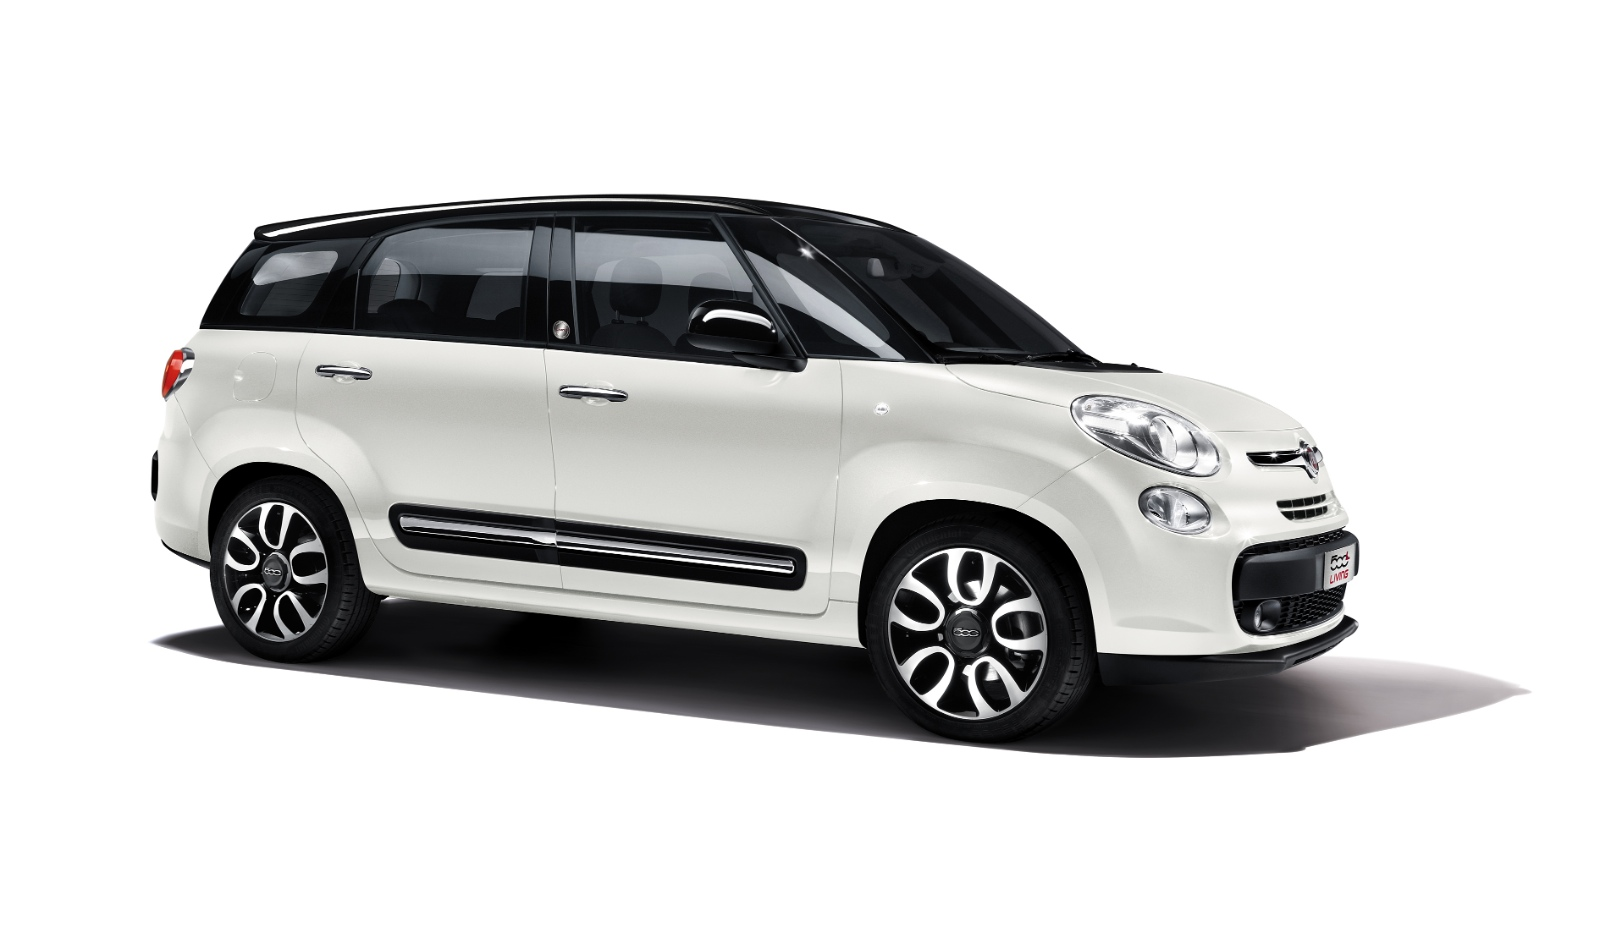 fiat 500l living gets 0 9 liter two cylinder cng engine. Black Bedroom Furniture Sets. Home Design Ideas